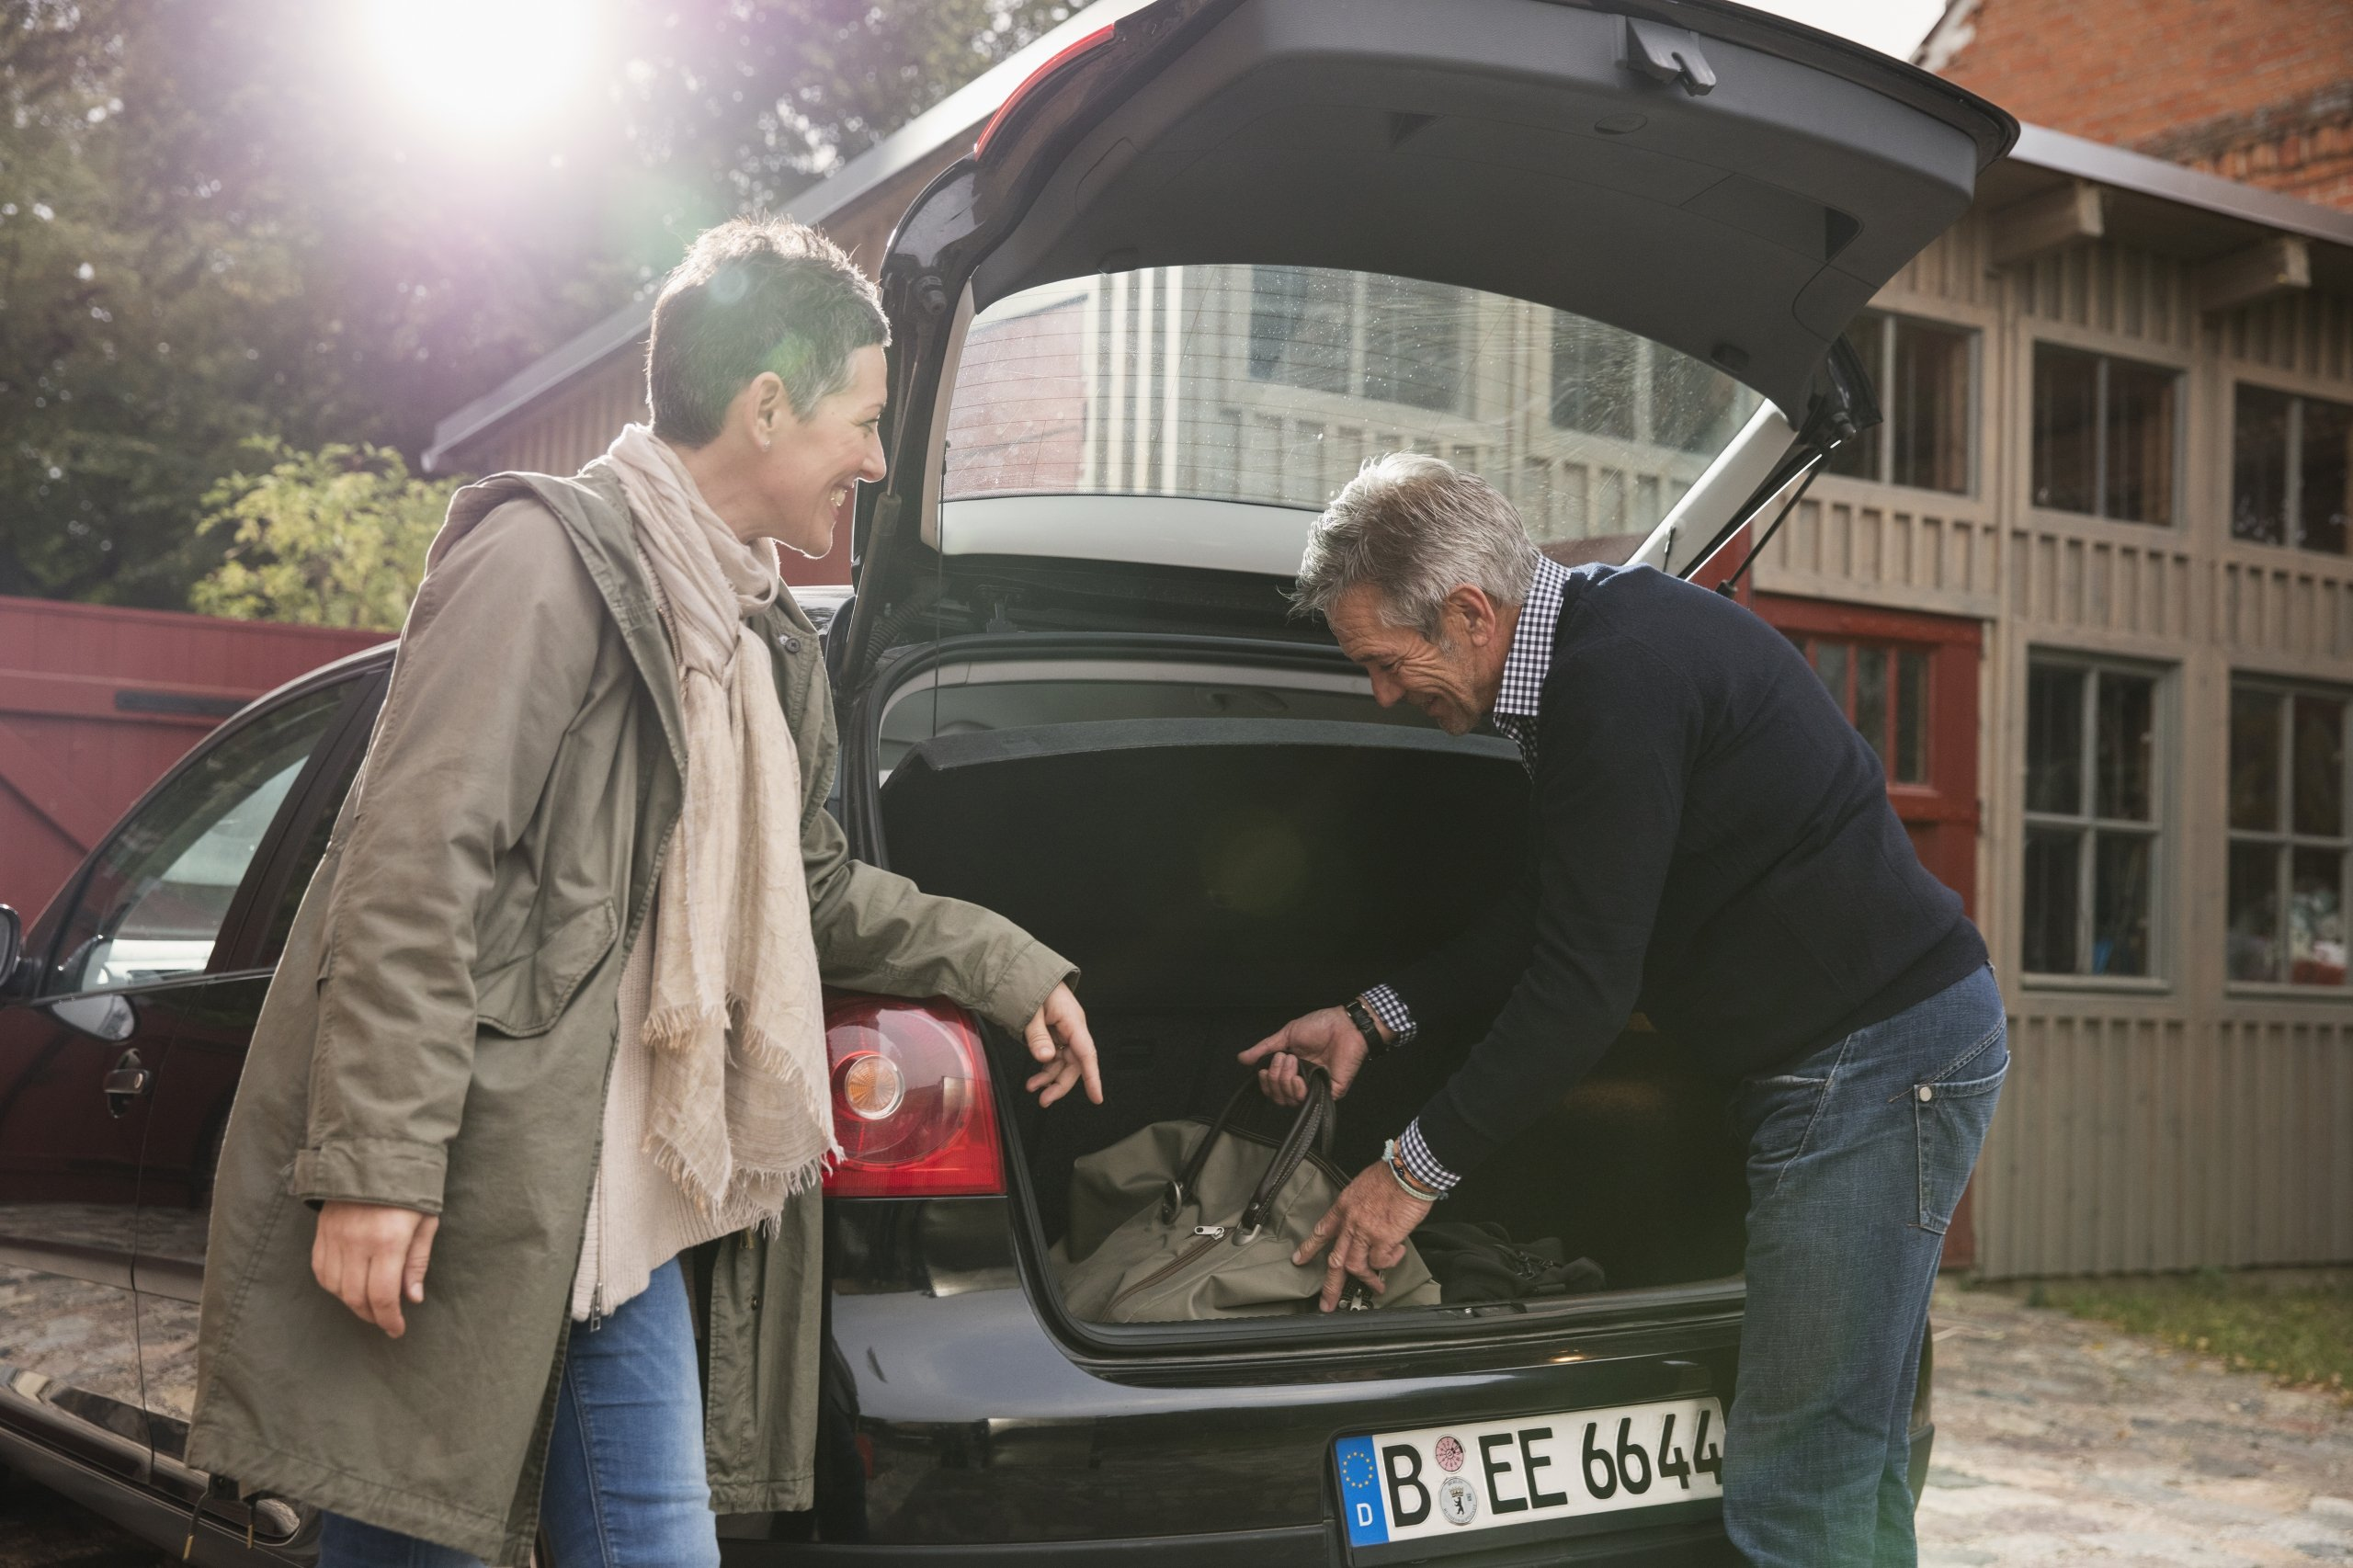 A couple reaching inside the trunk of their car